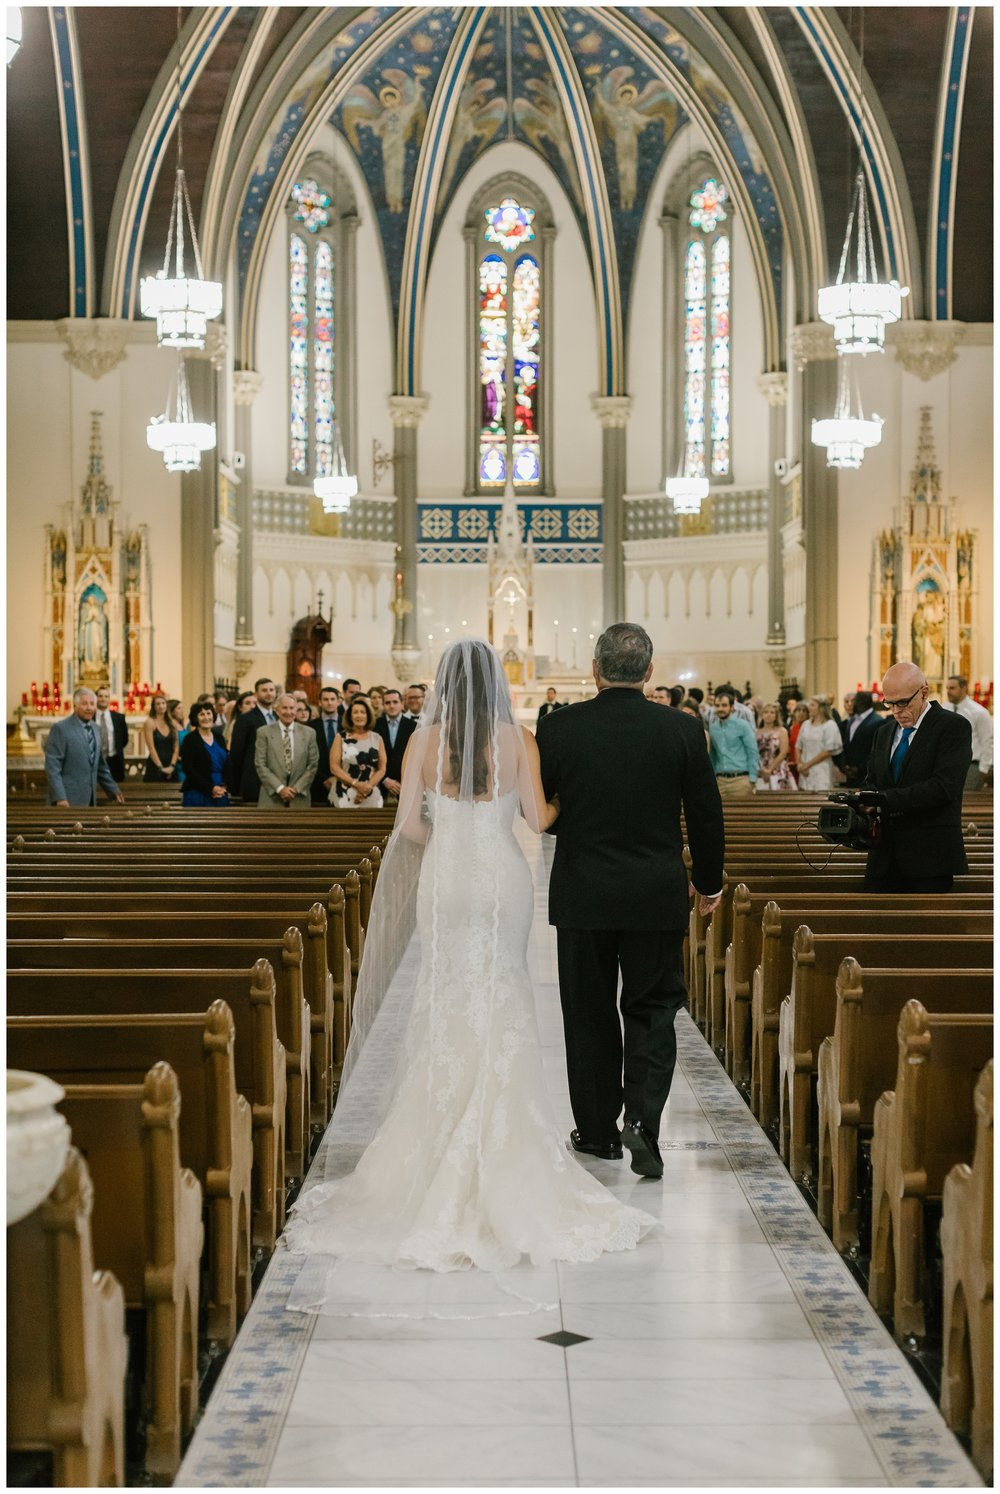 Rebecca_Bridges_Photography_Indianapolis_Wedding_Photographer_6800.jpg